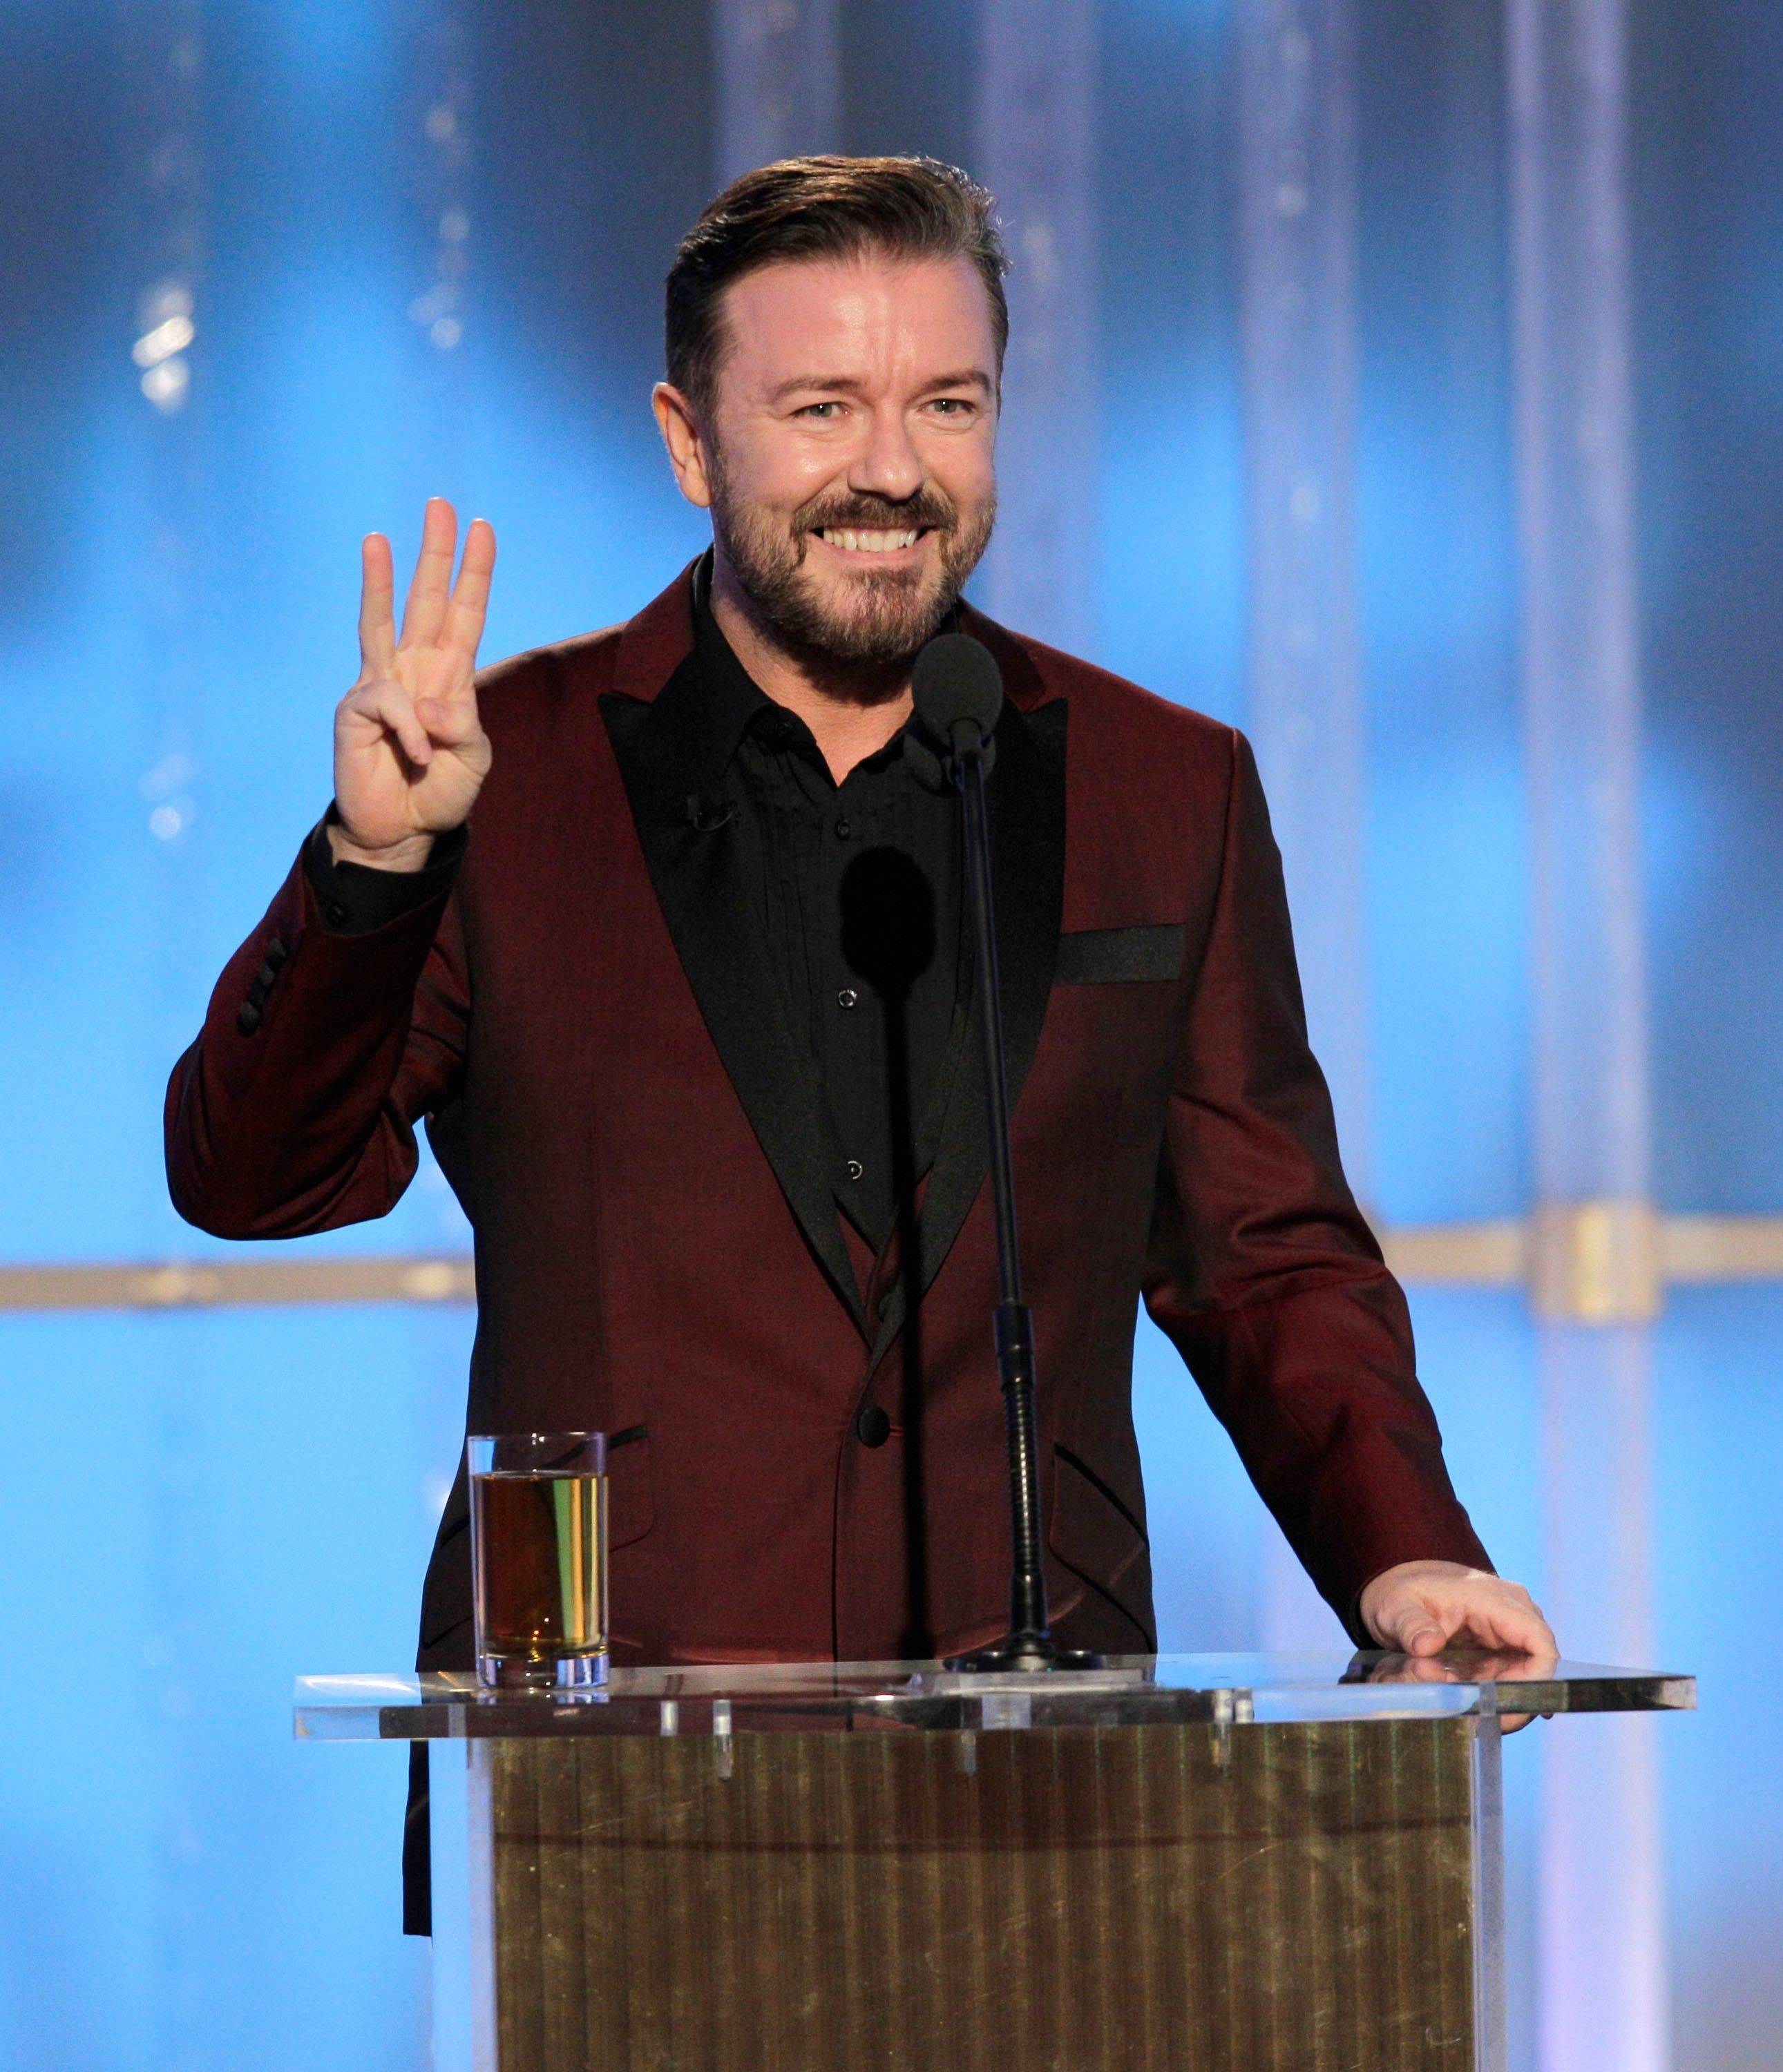 In this image released by NBC, host Ricky Gervais speaks during the 69th Annual Golden Globe Awards.